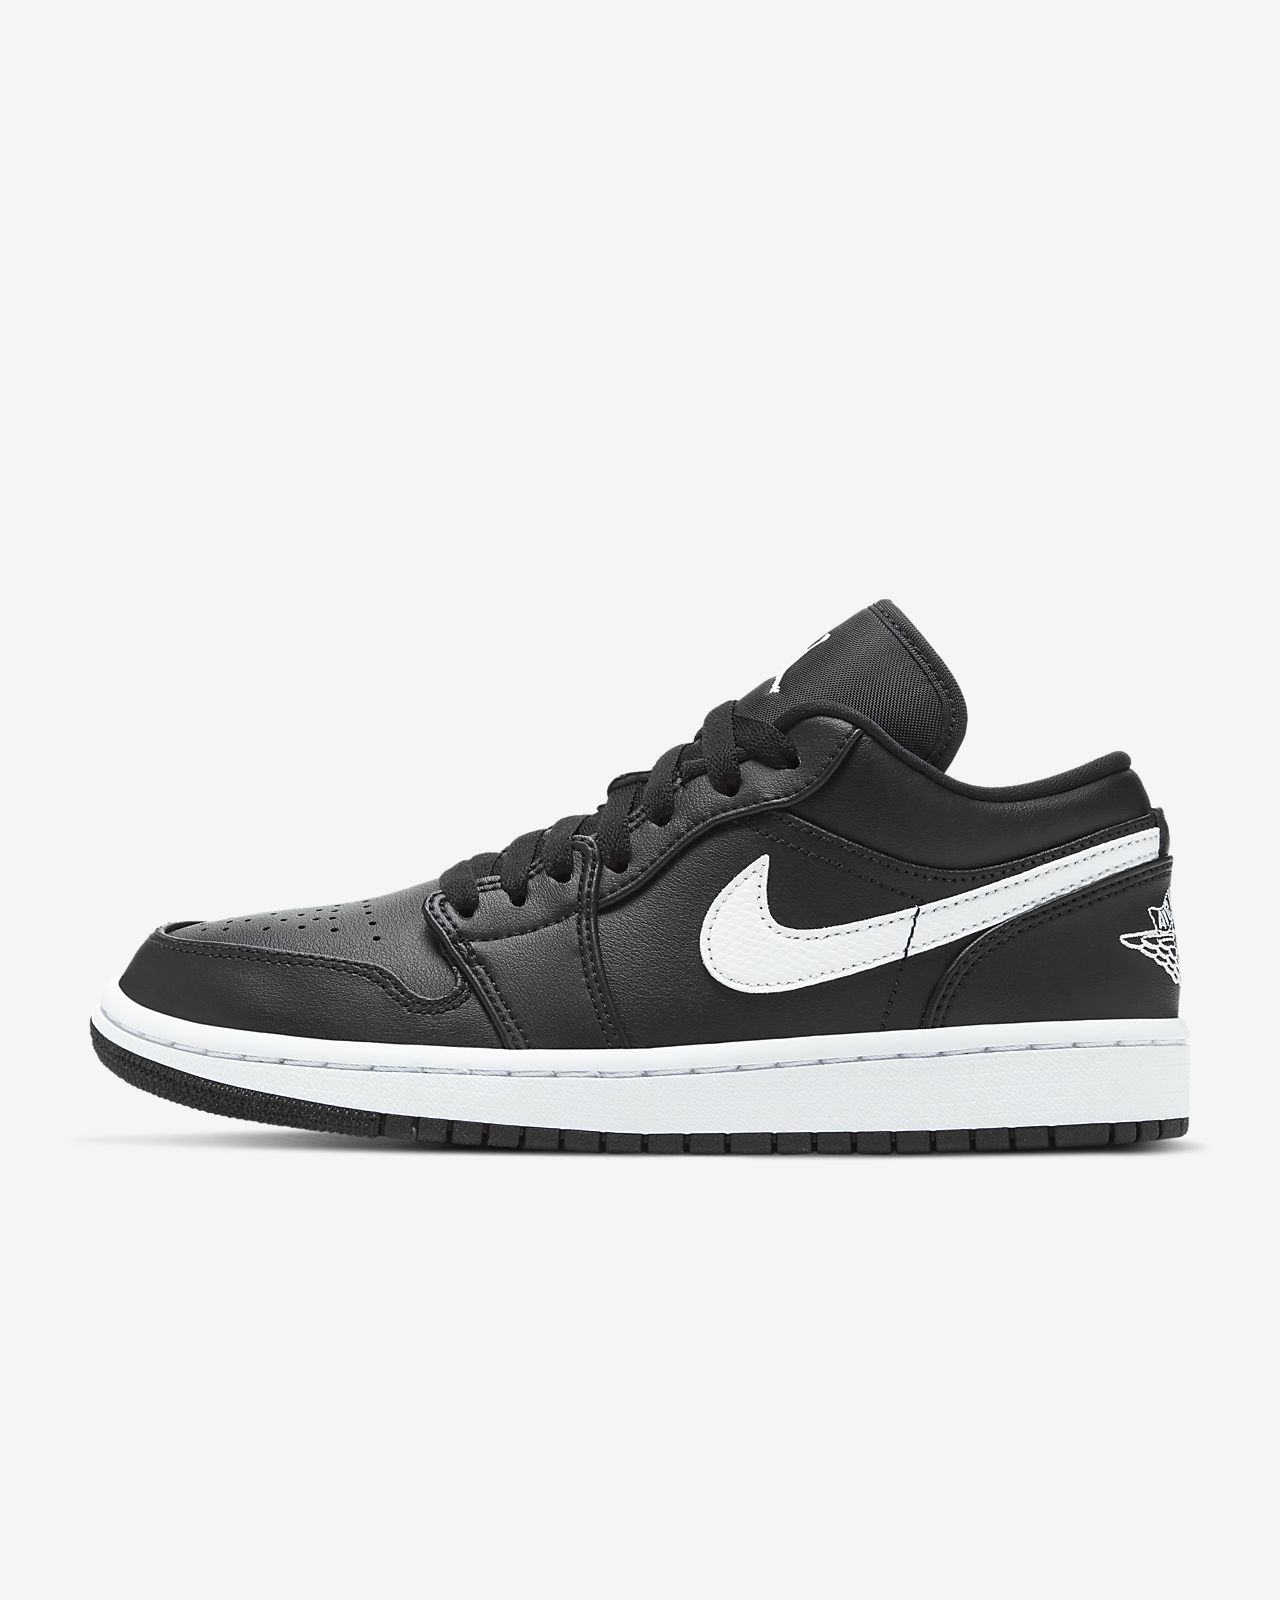 Air Jordan 1 Low Damenschuh